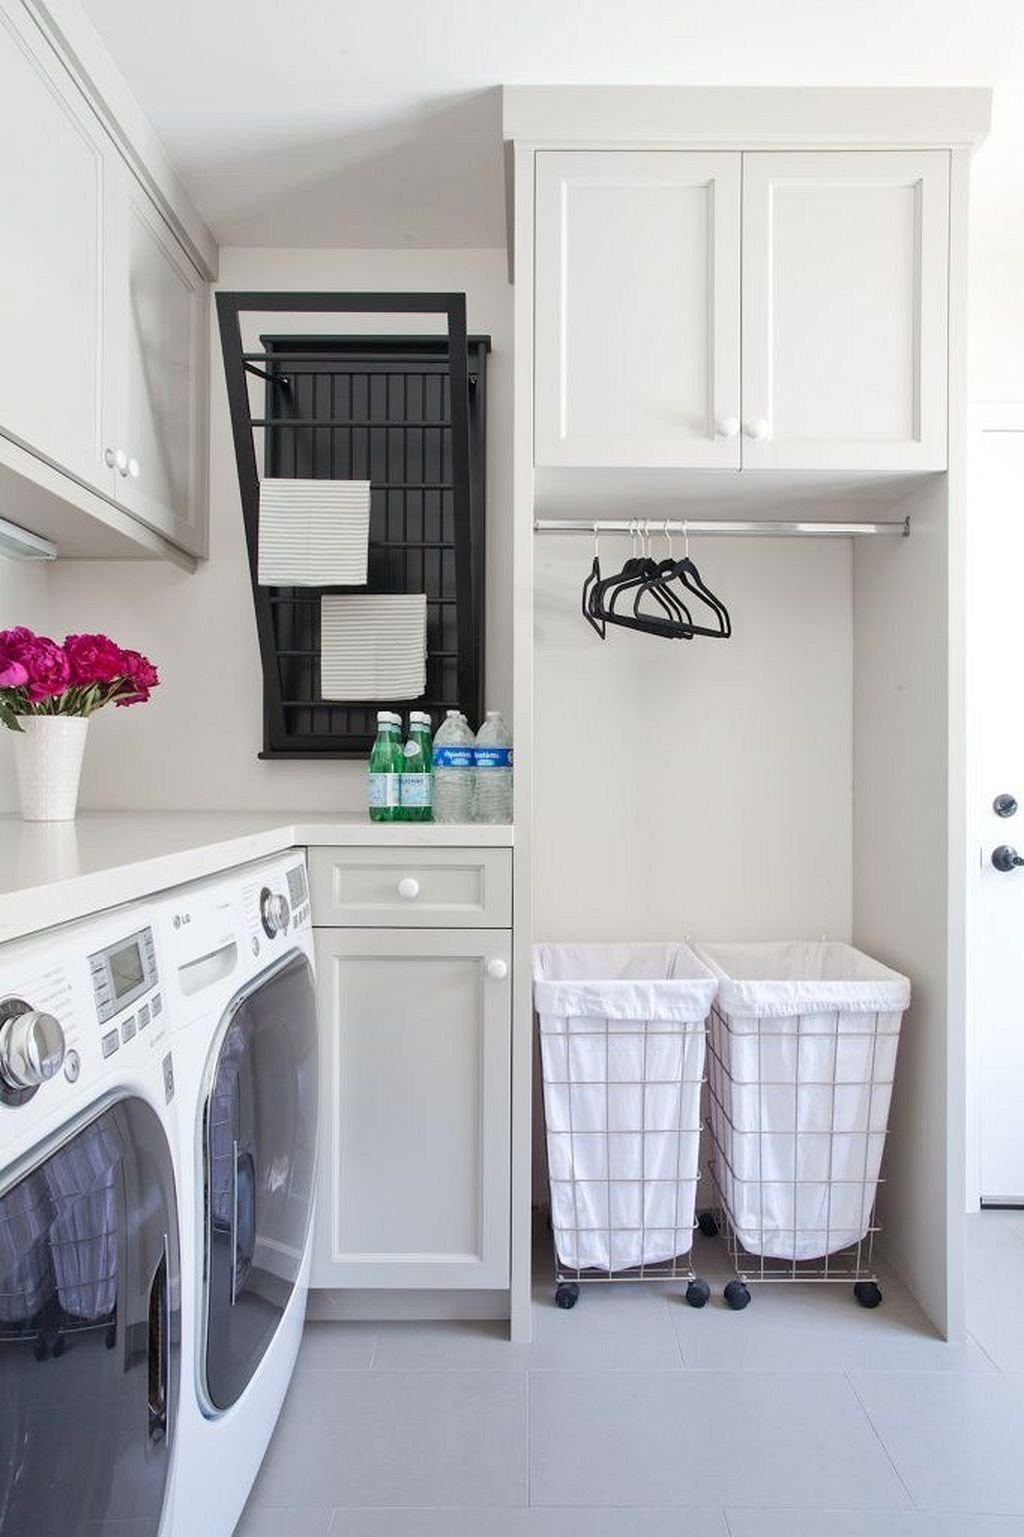 10 Ideal Laundry Room Drying Rack Ideas 40 laundry drying rack ideas deco buanderie epingle et deco